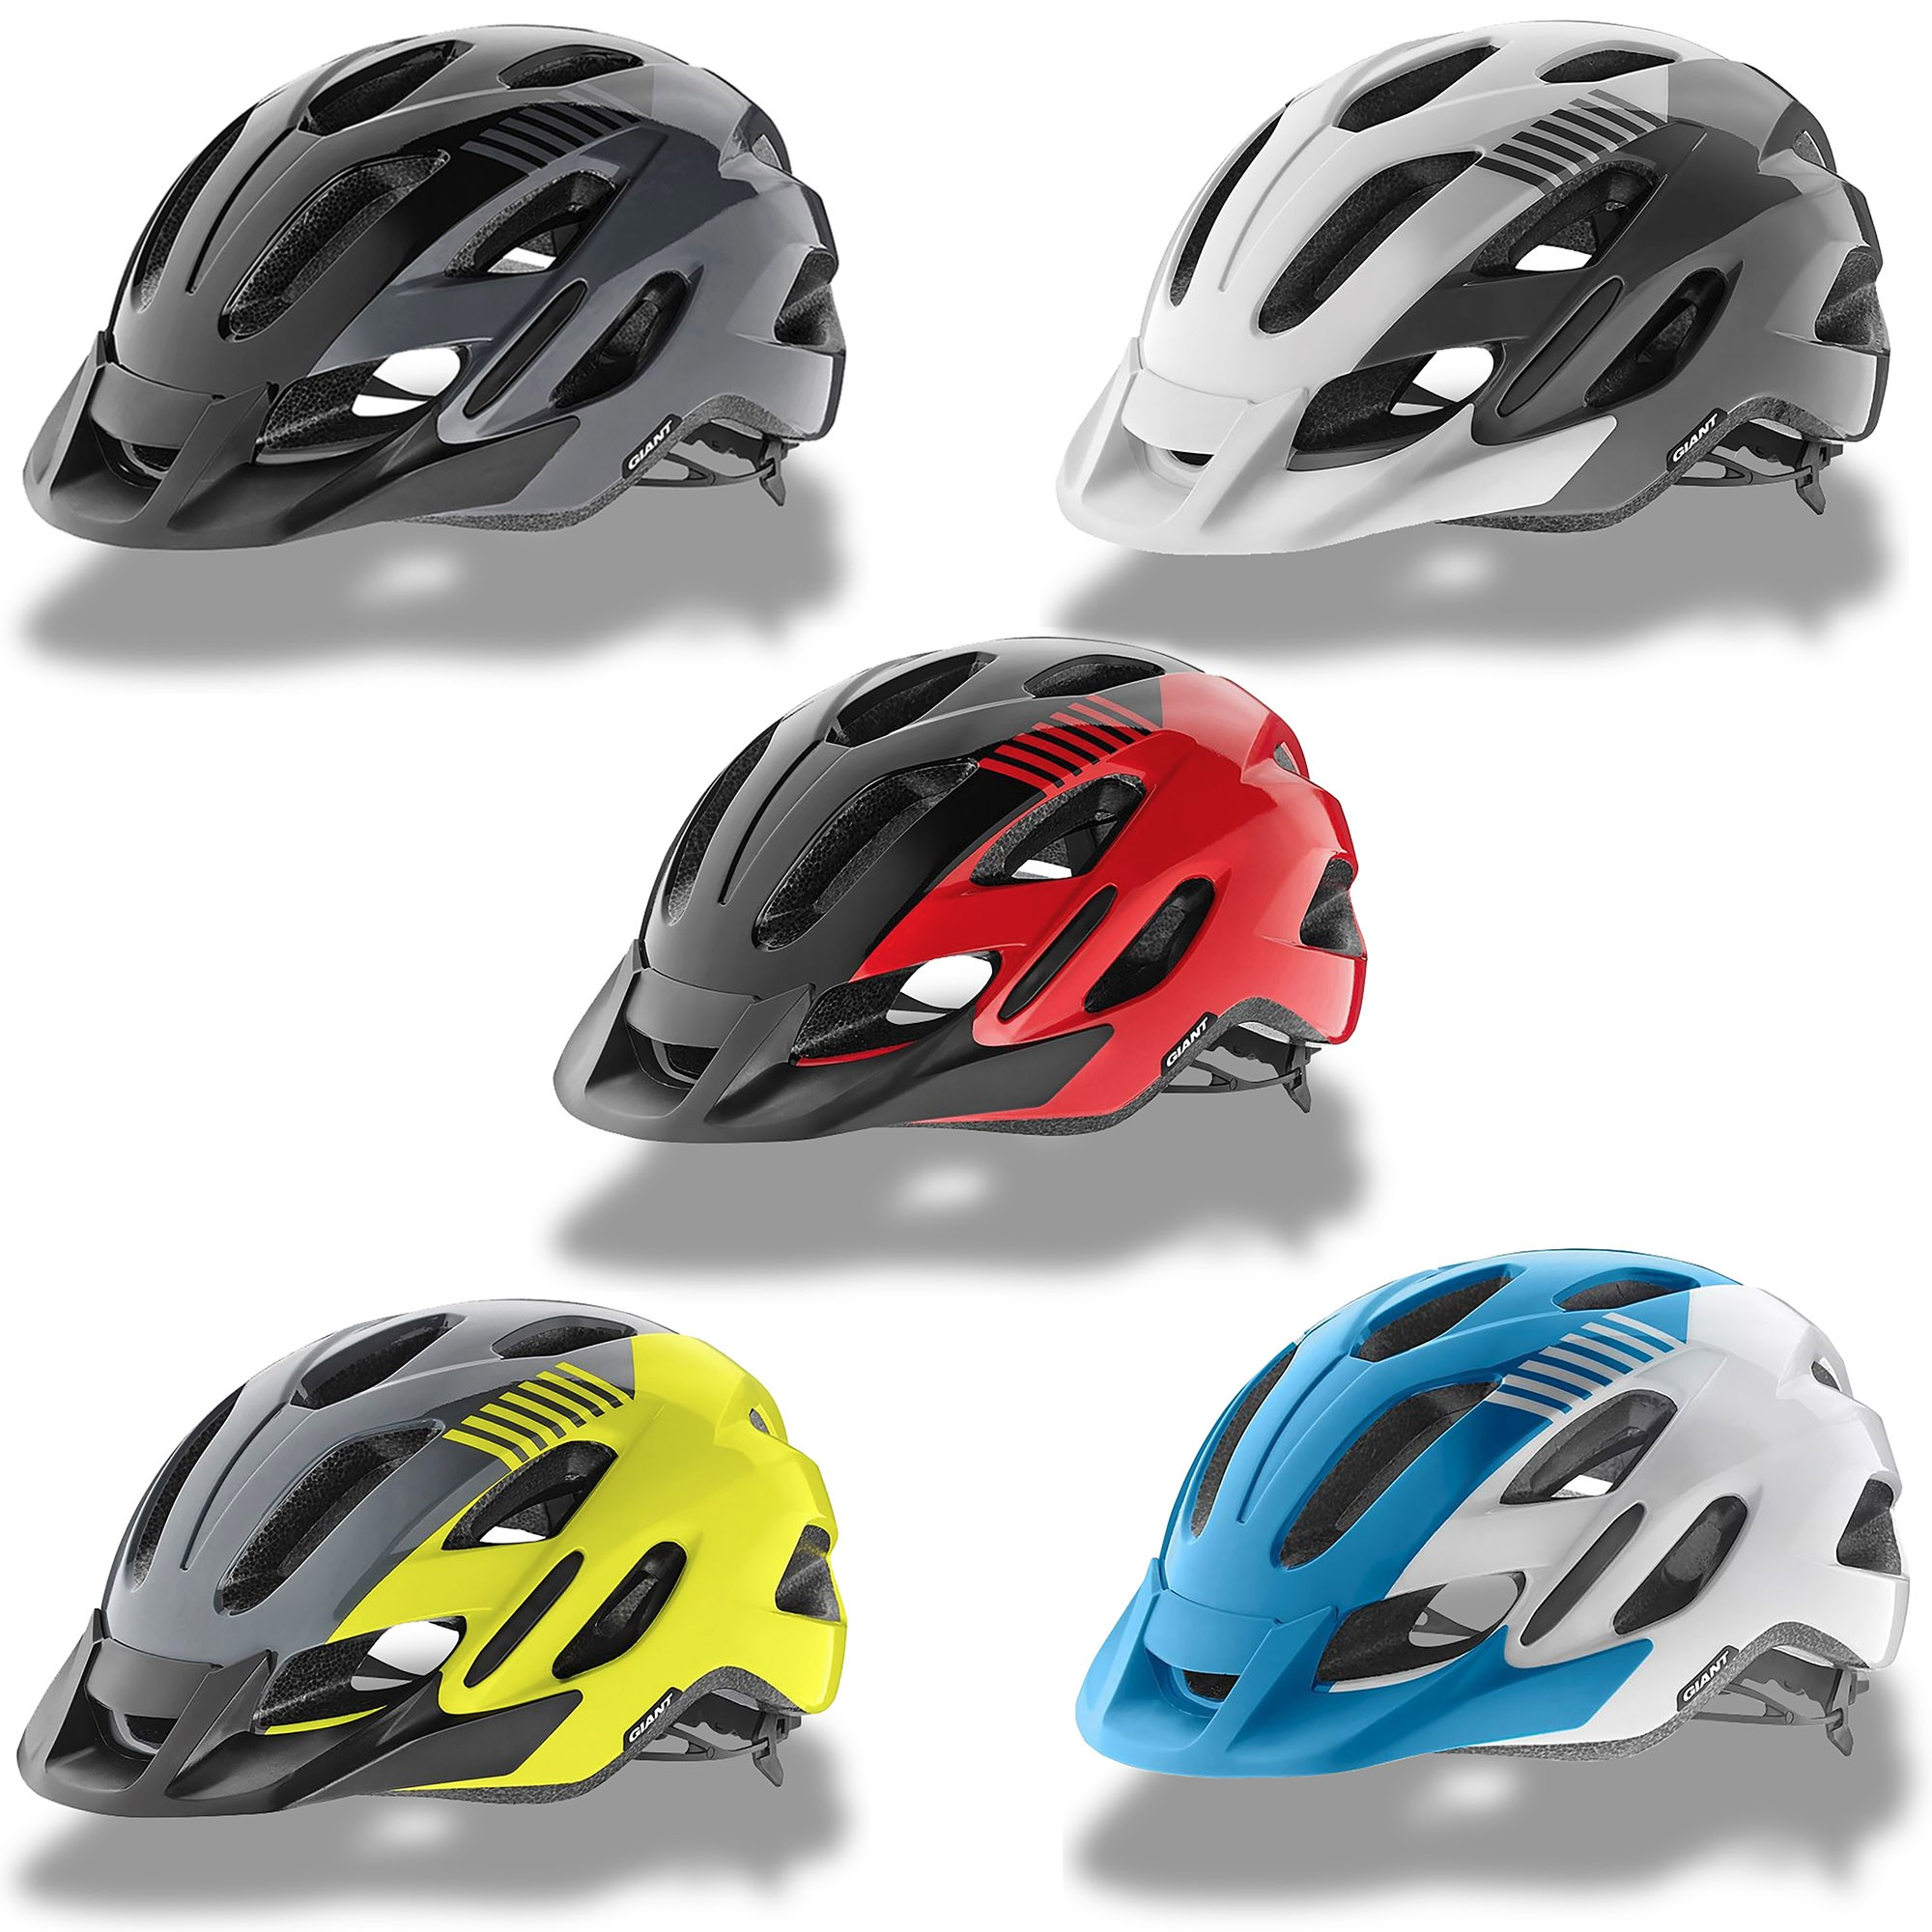 high quality low priced buy online Casque Giant VTT PROMPT - veloseine.fr